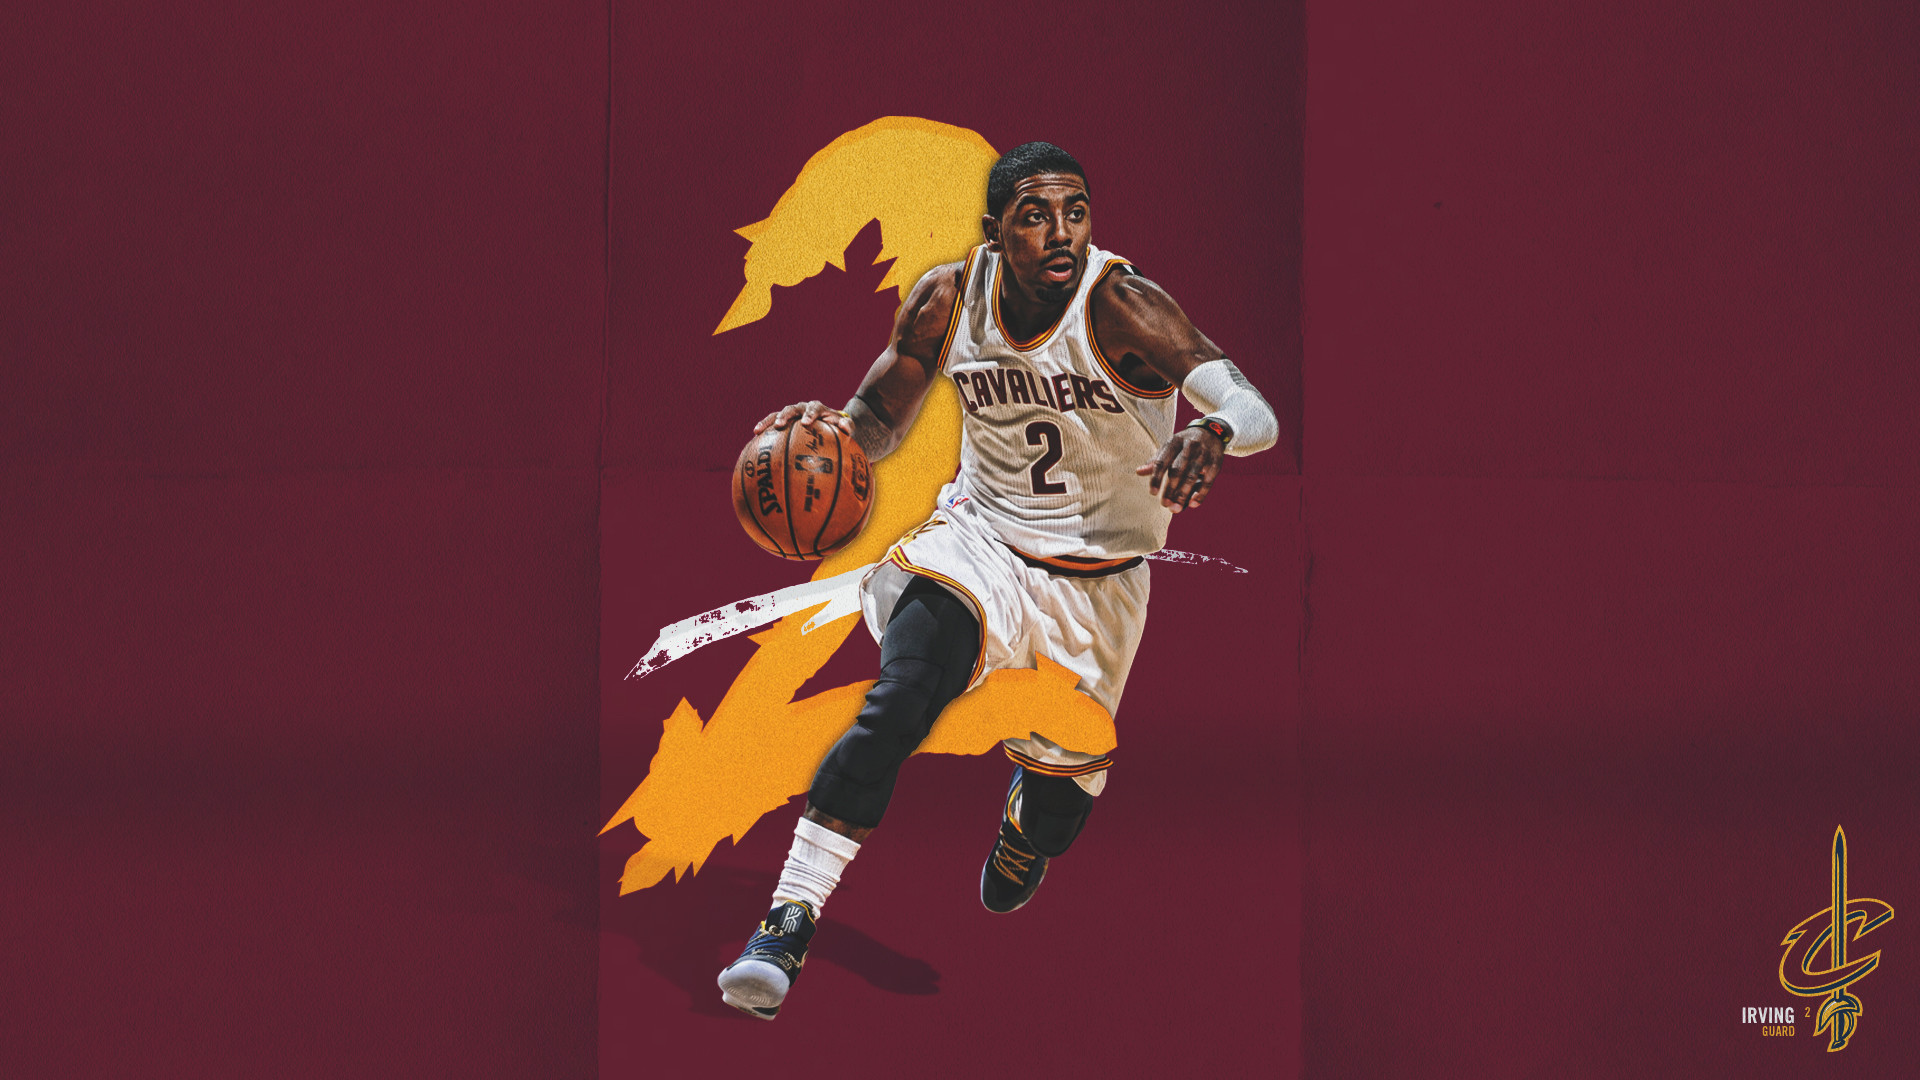 1920x1080 kyrie irving nike wallpaper